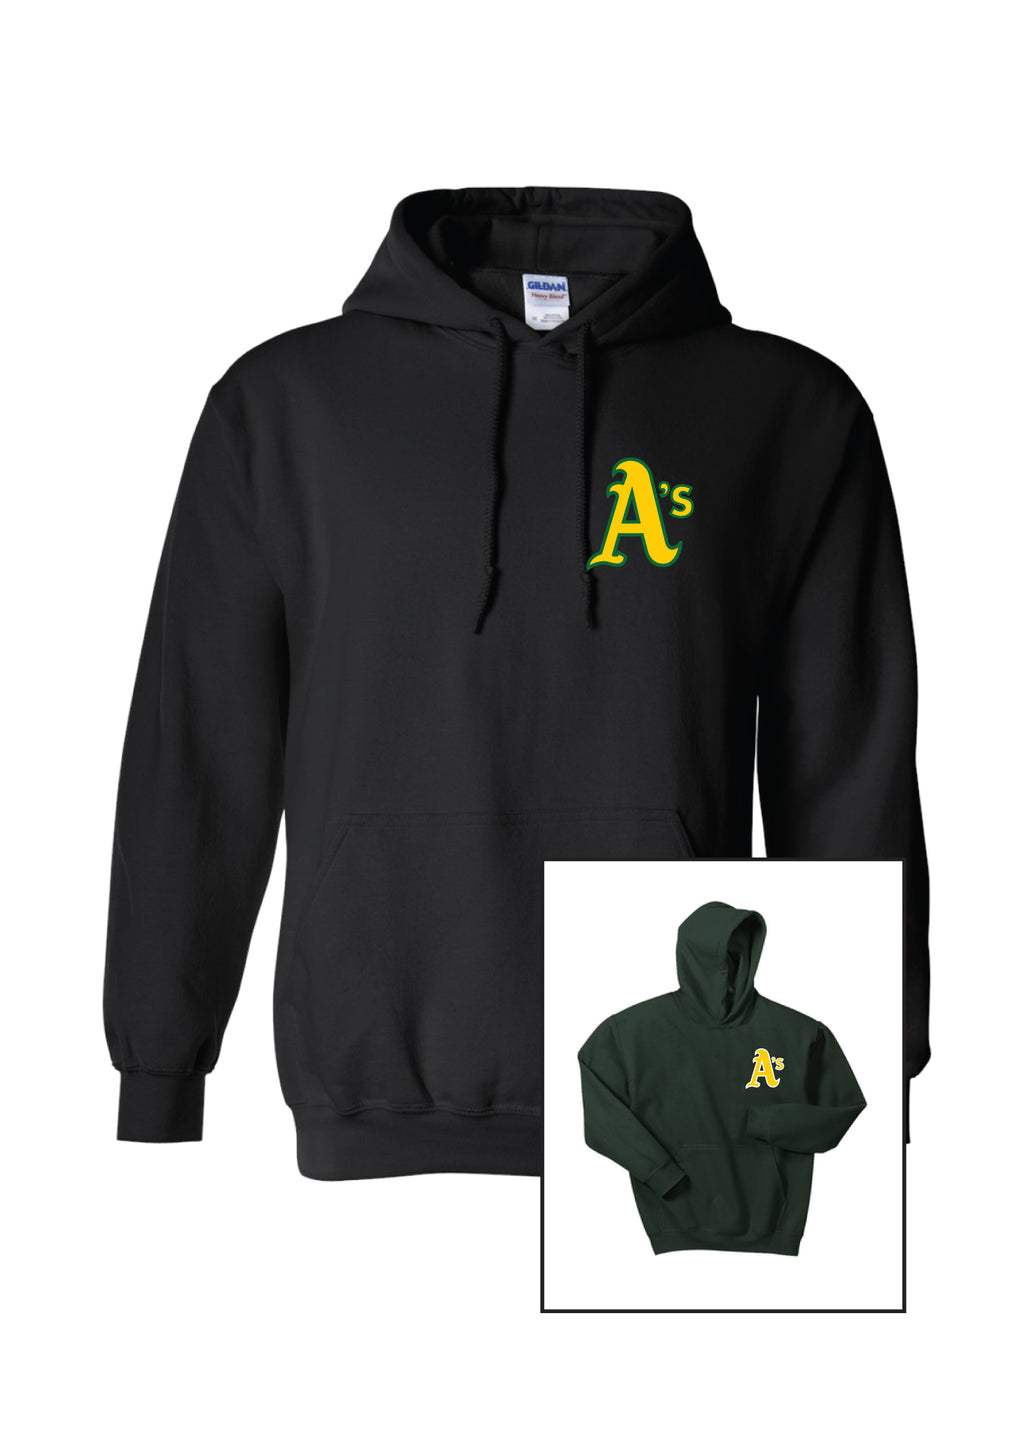 A's Logo Adult Unisex Hoodie